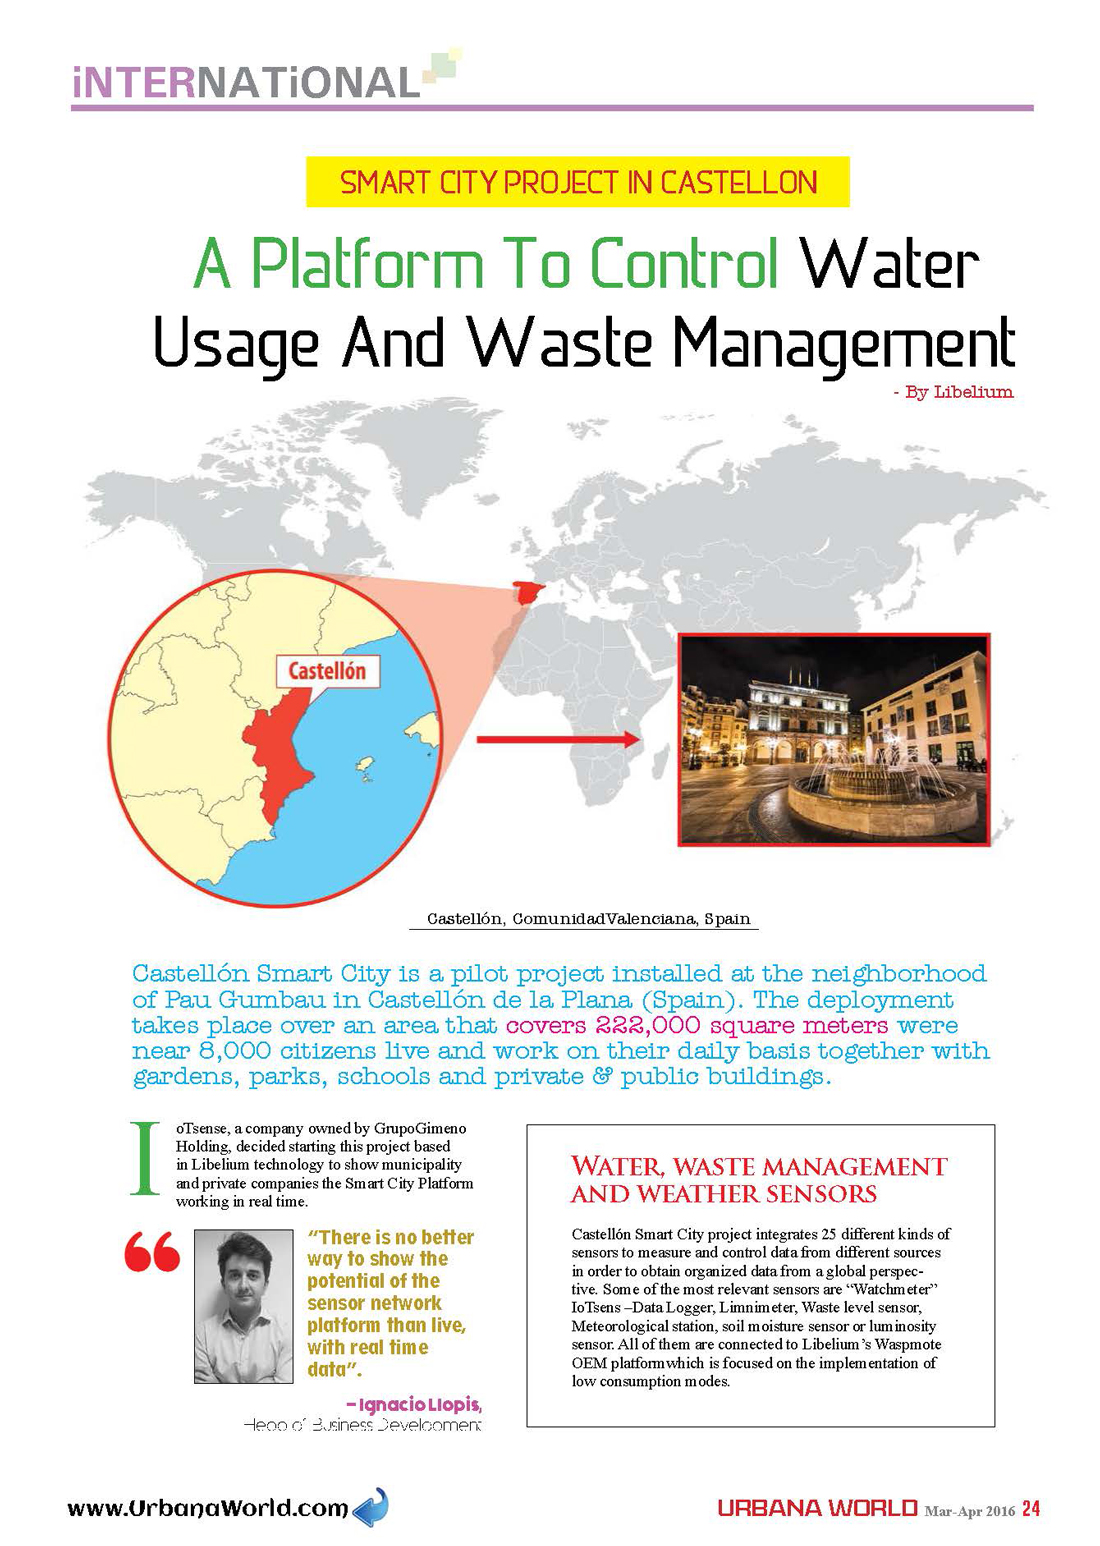 Urbana World – A Platform To Control Water Usage And Waste Management